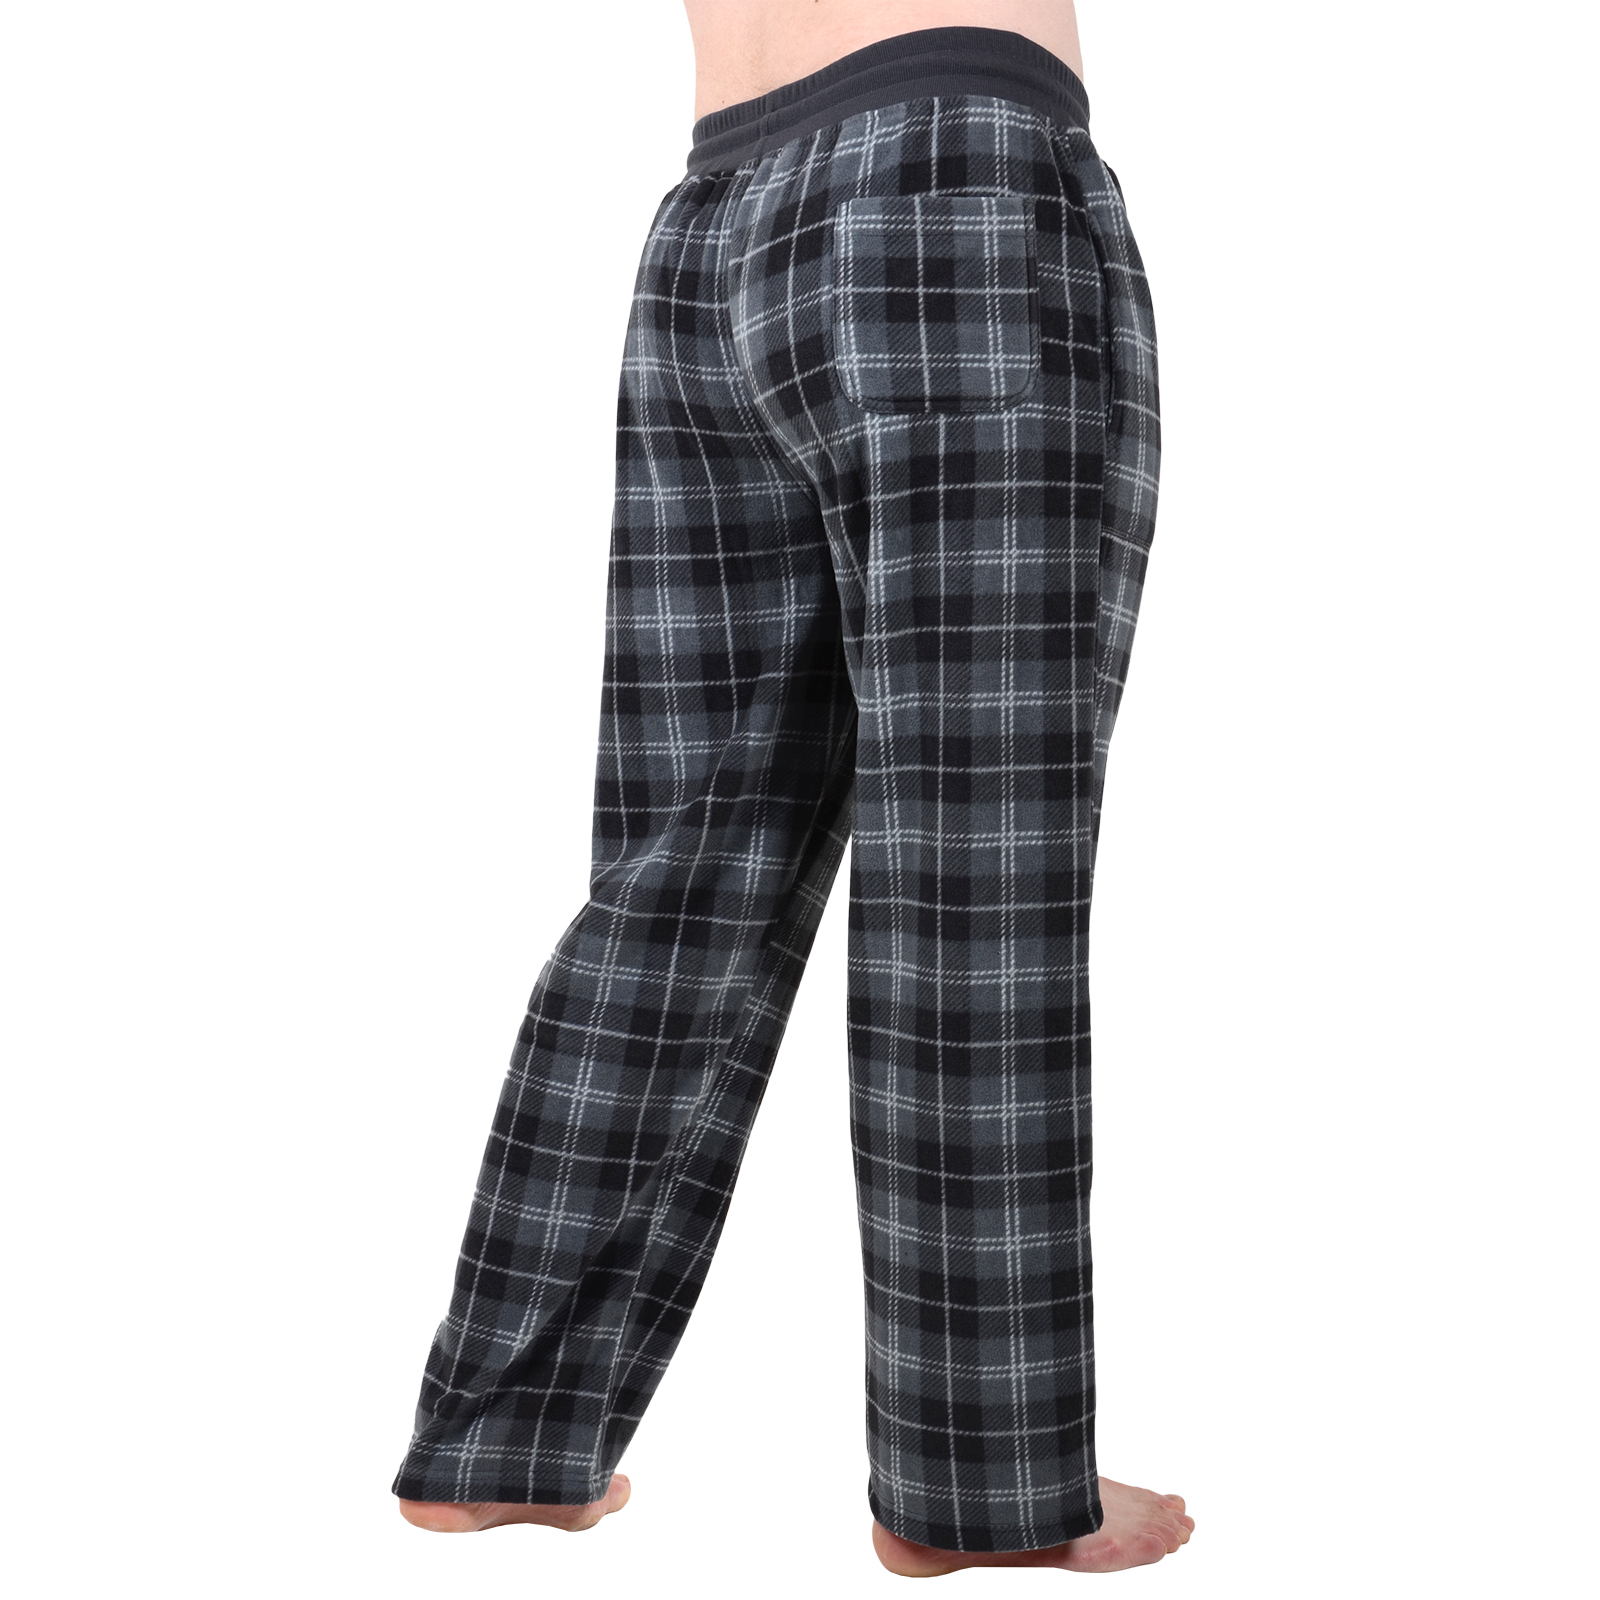 View all mens clothing Find the perfect nightwear via our selection of pyjama sets, dressing gowns, lounge sets, robes and onesie's. We have simple and patterned loungewear from Calvin Klein, Firetrap and SoulCal for an easy going look and feel.